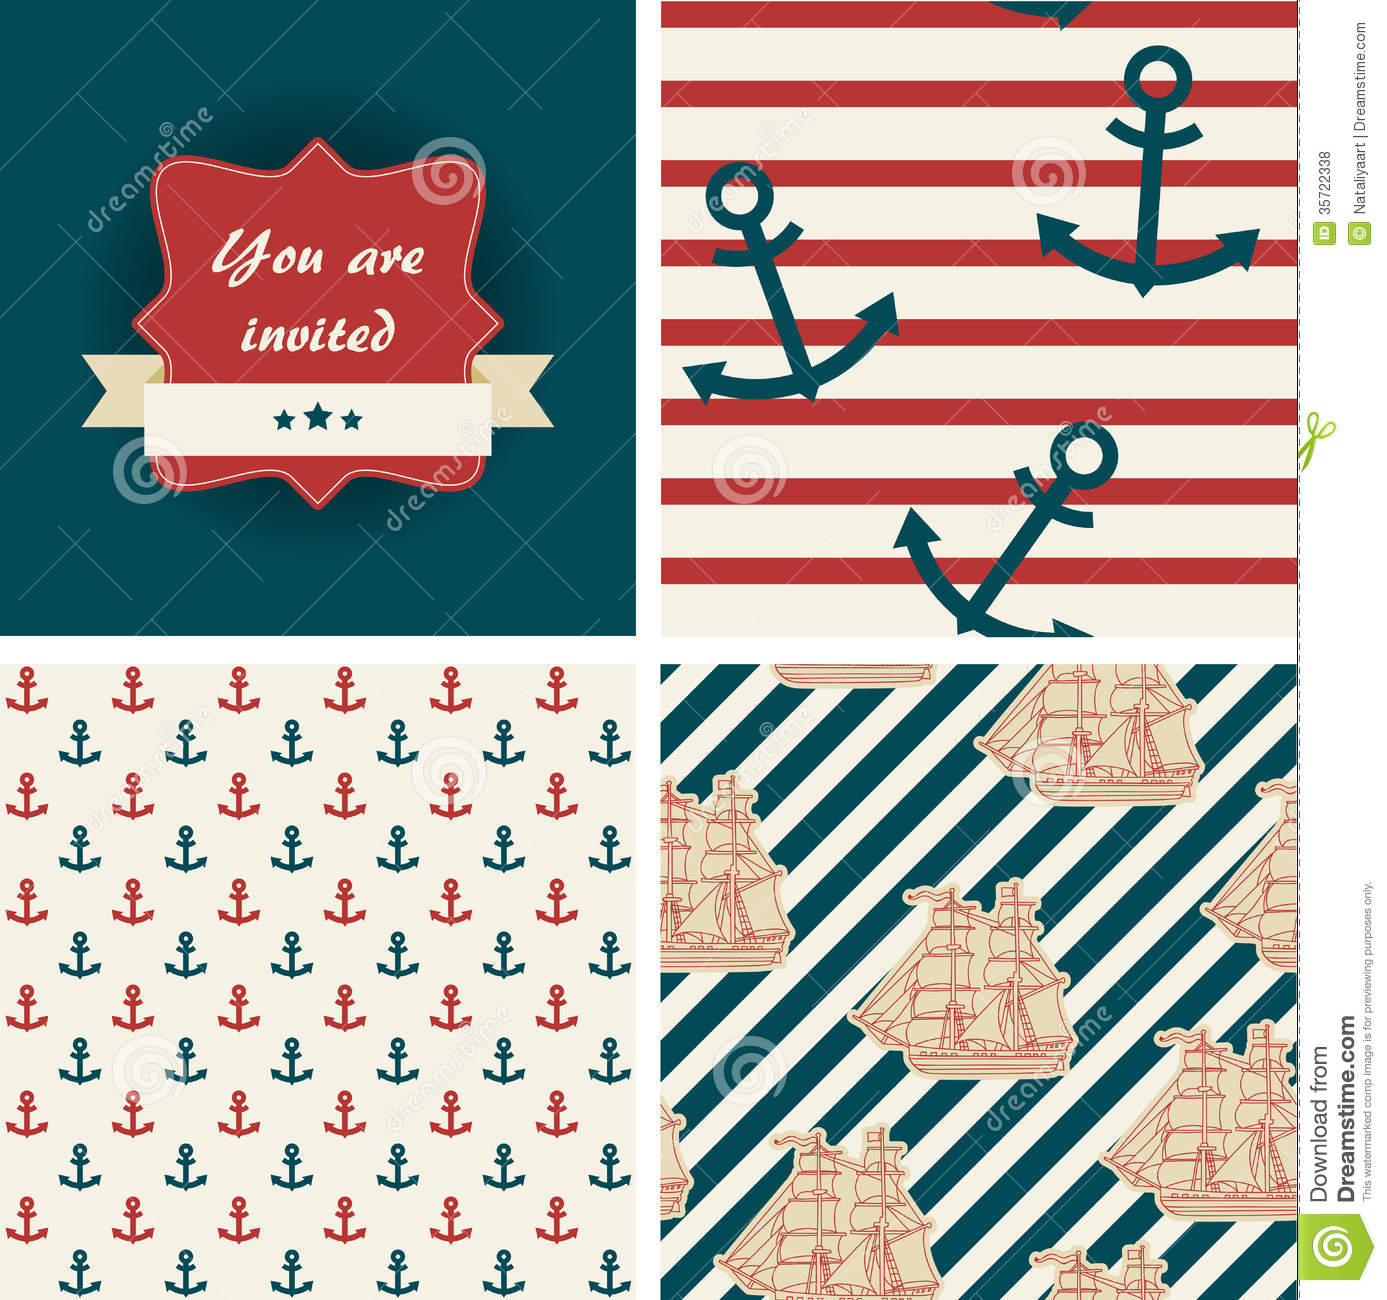 Seamless nautical patterns stock vector. Image of ornament ...